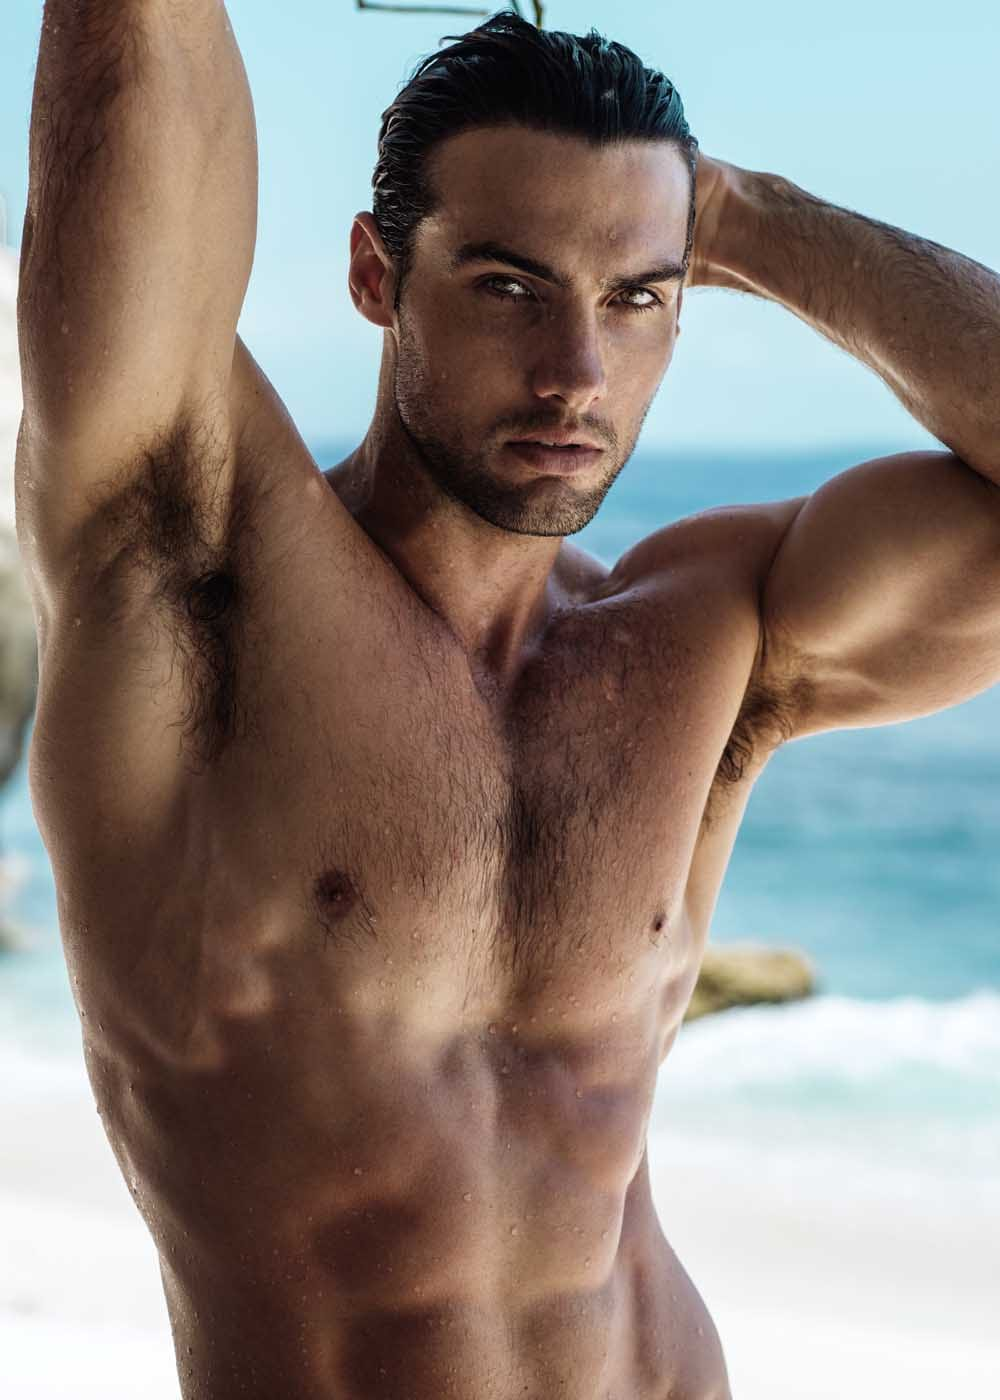 Balistarz-model-Mitchell-Wick-showing-his-hot-and-sexy-body-photo-taken-near-the-beach